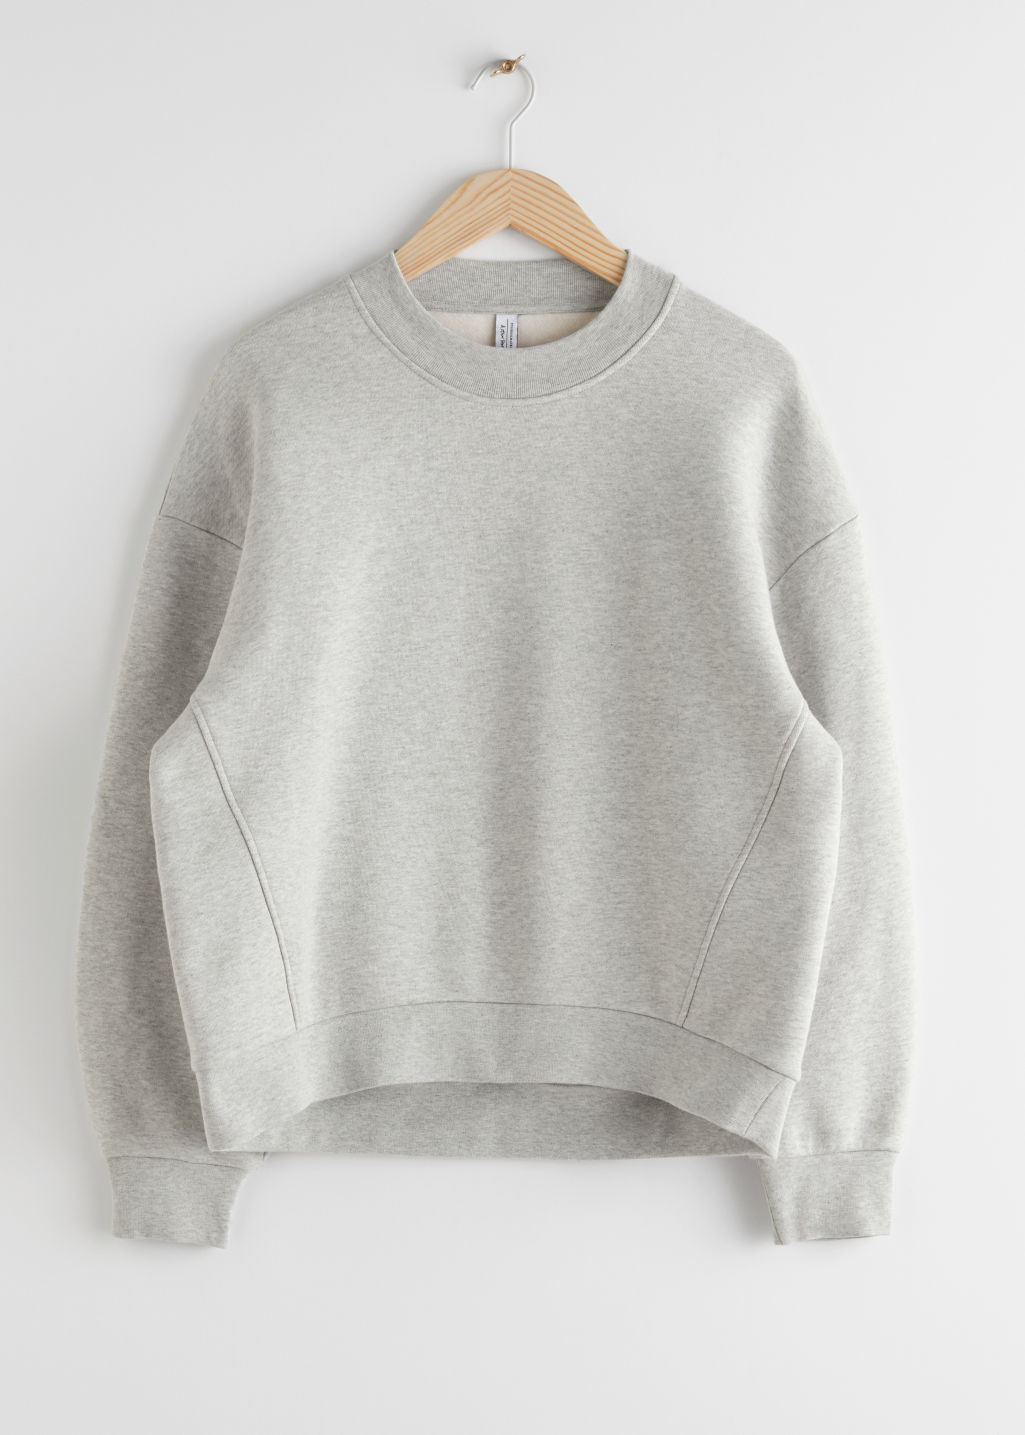 StillLife Front Image of Stories Organic Cotton Mock Neck Sweater in Grey